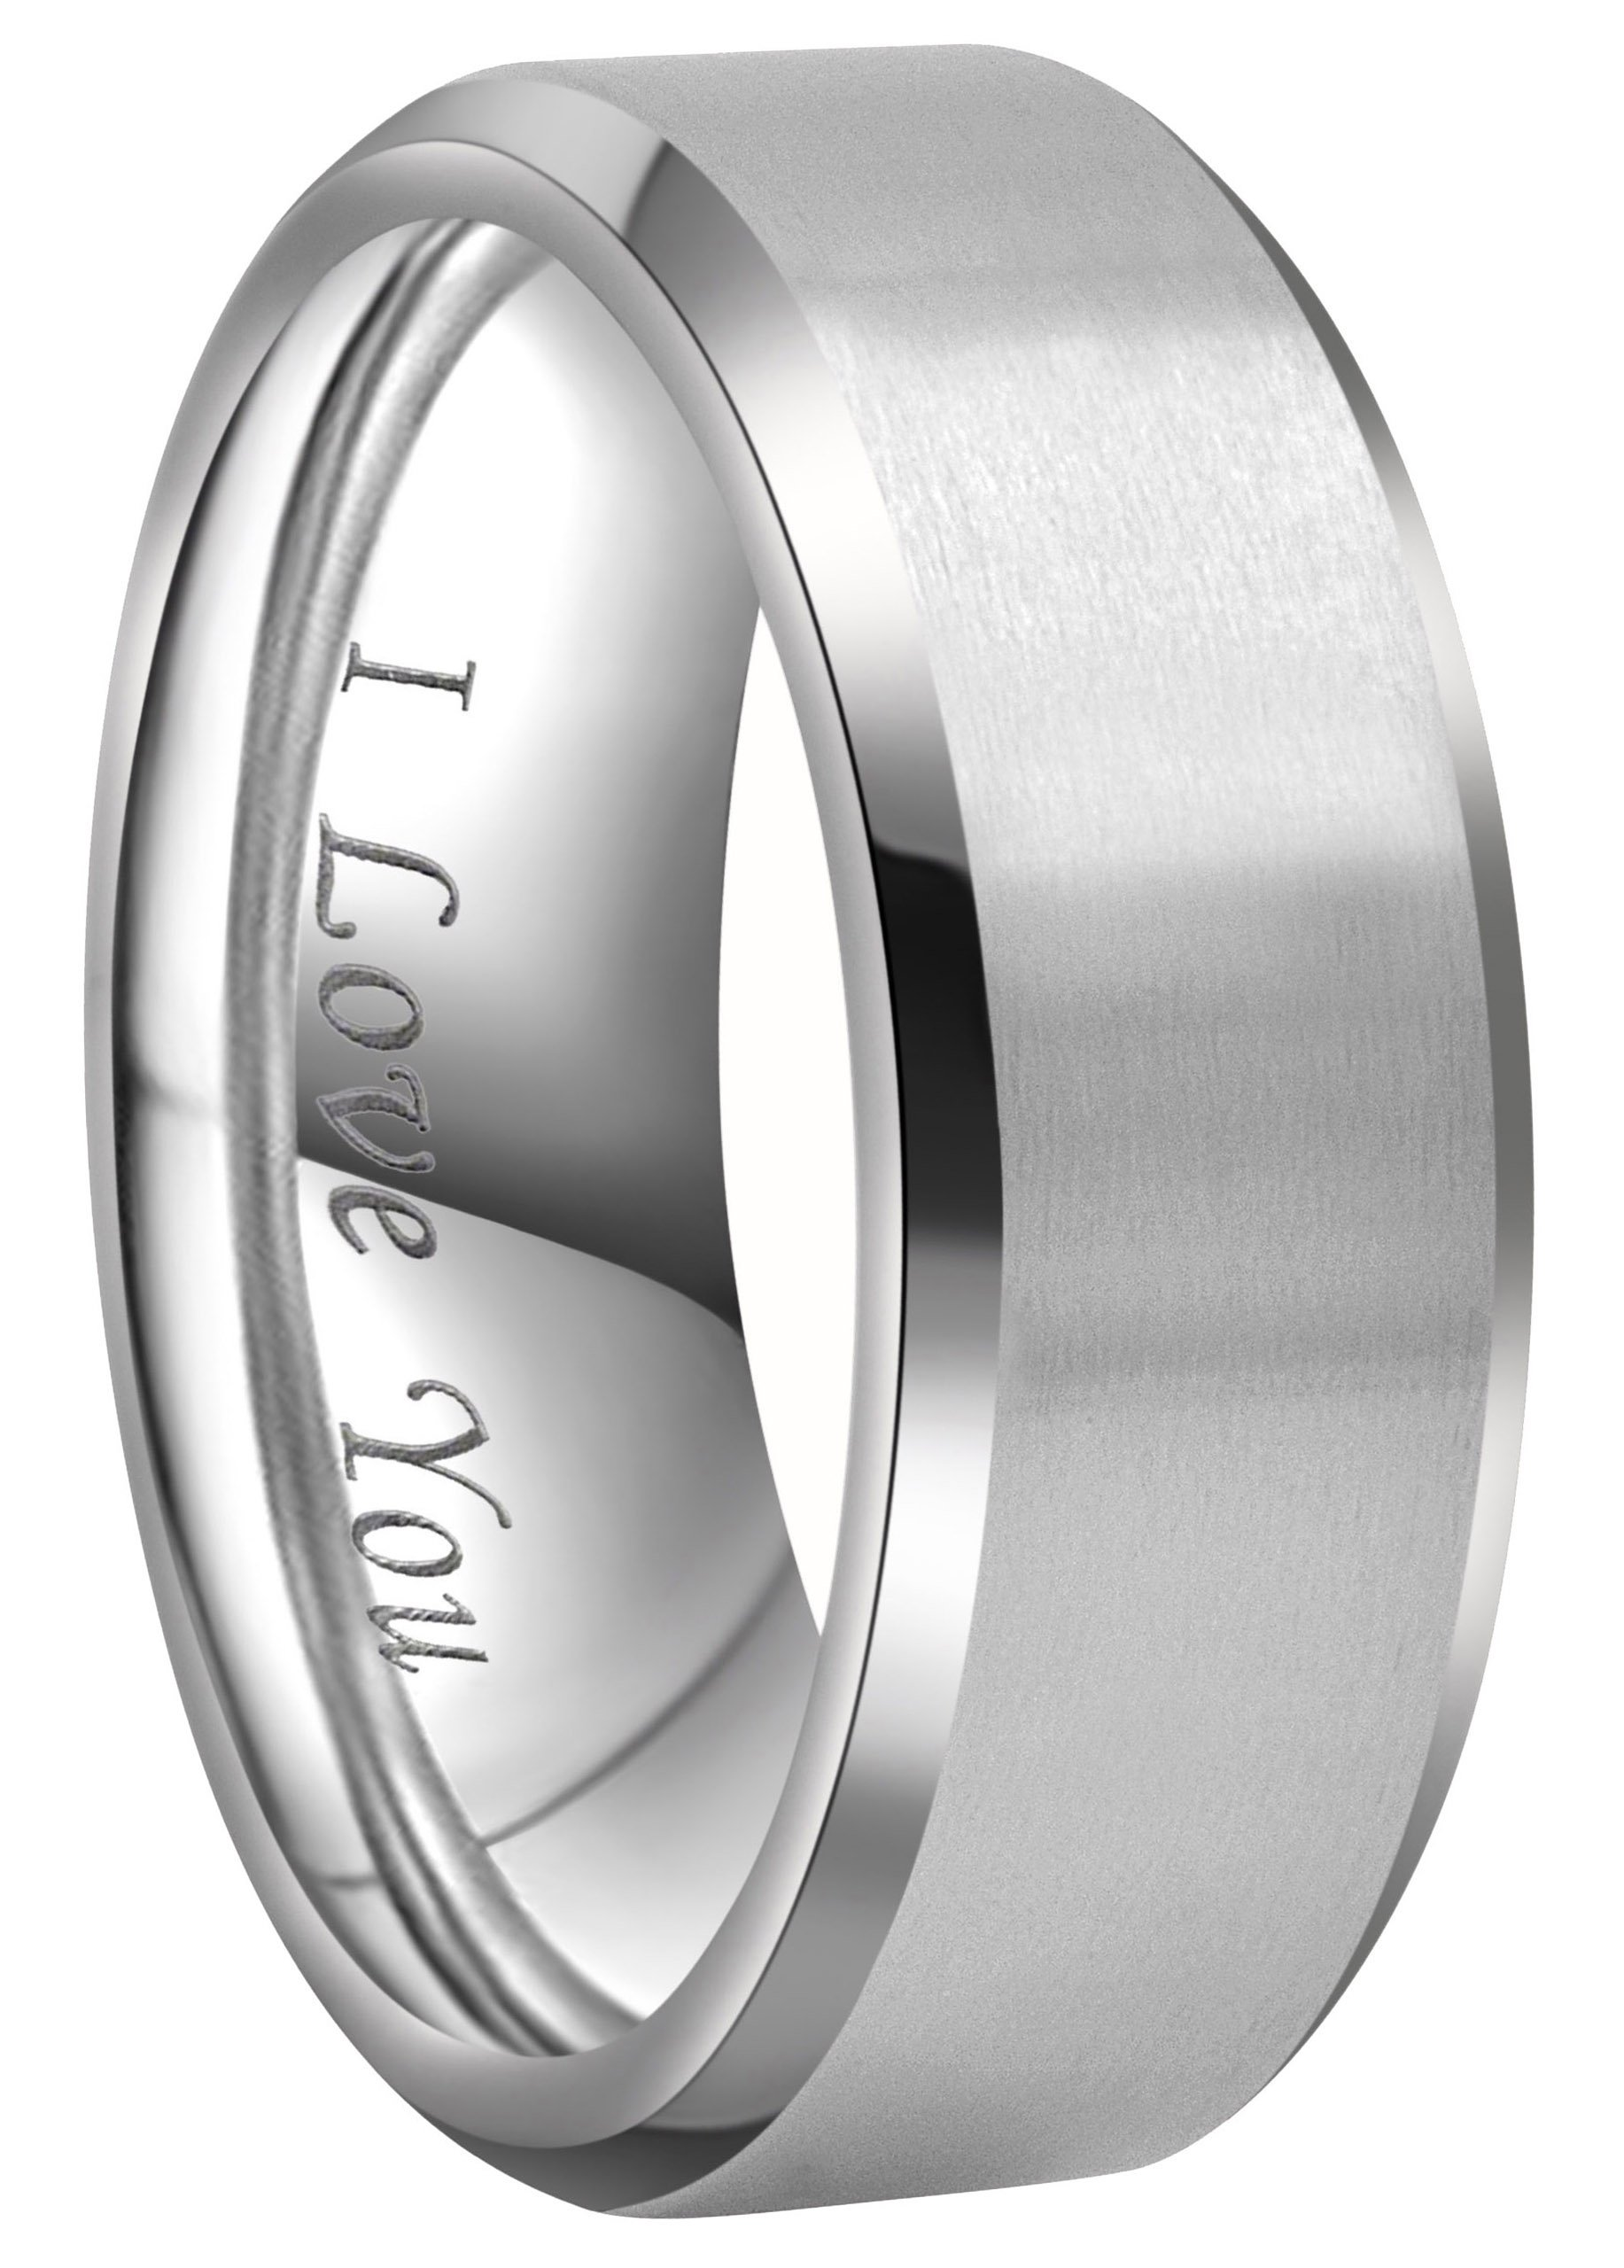 Crownal 4mm 6mm 8mm Titanium Wedding Couple Bands Rings Men Women Matte Brush Center Beveled Edges Engraved ''I Love You'' Comfort Fit Size 4 To 16 (8mm,8)